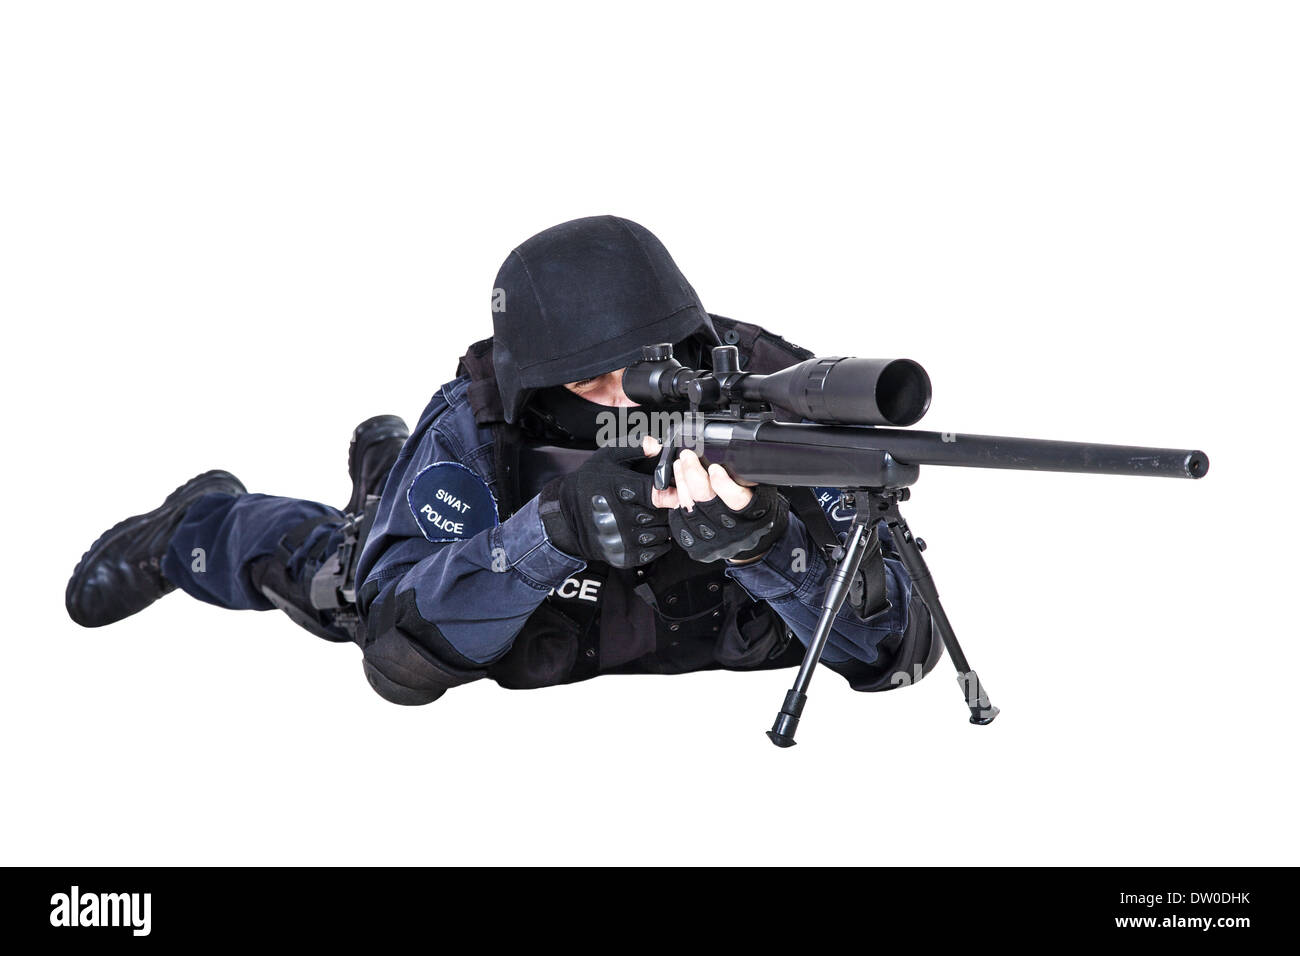 Swat Officer With Sniper Rifle Stock Photo 67008191 Alamy